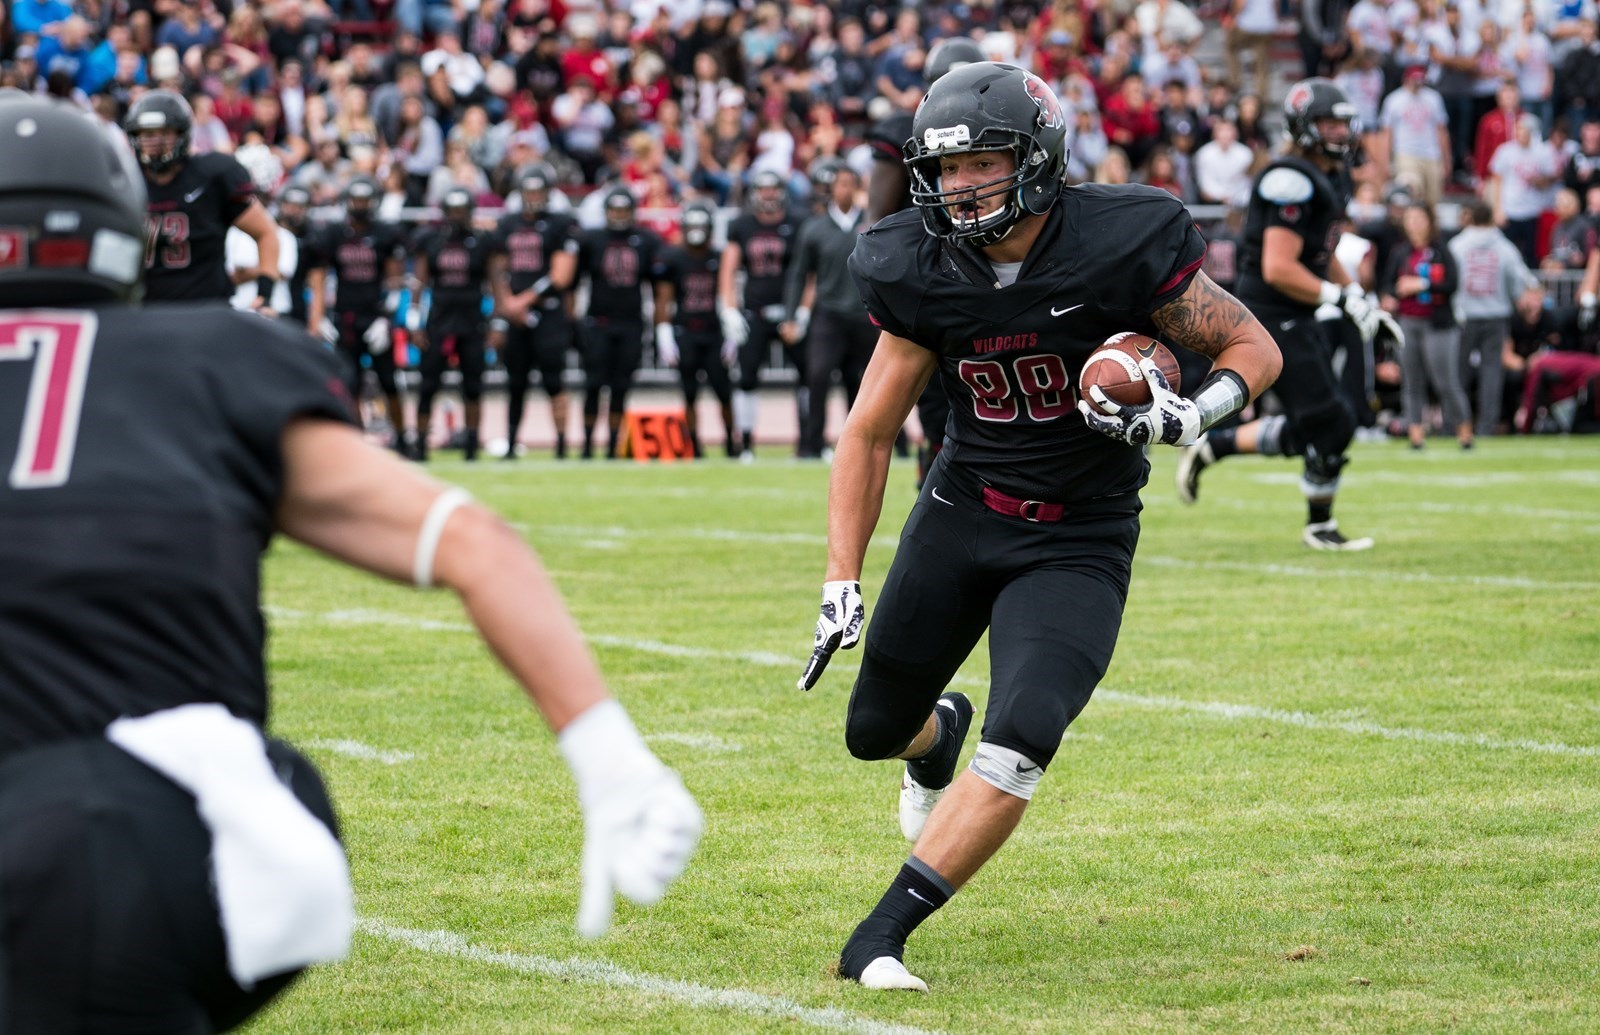 Football Travels To Arcata For Showdown With Hsu Central